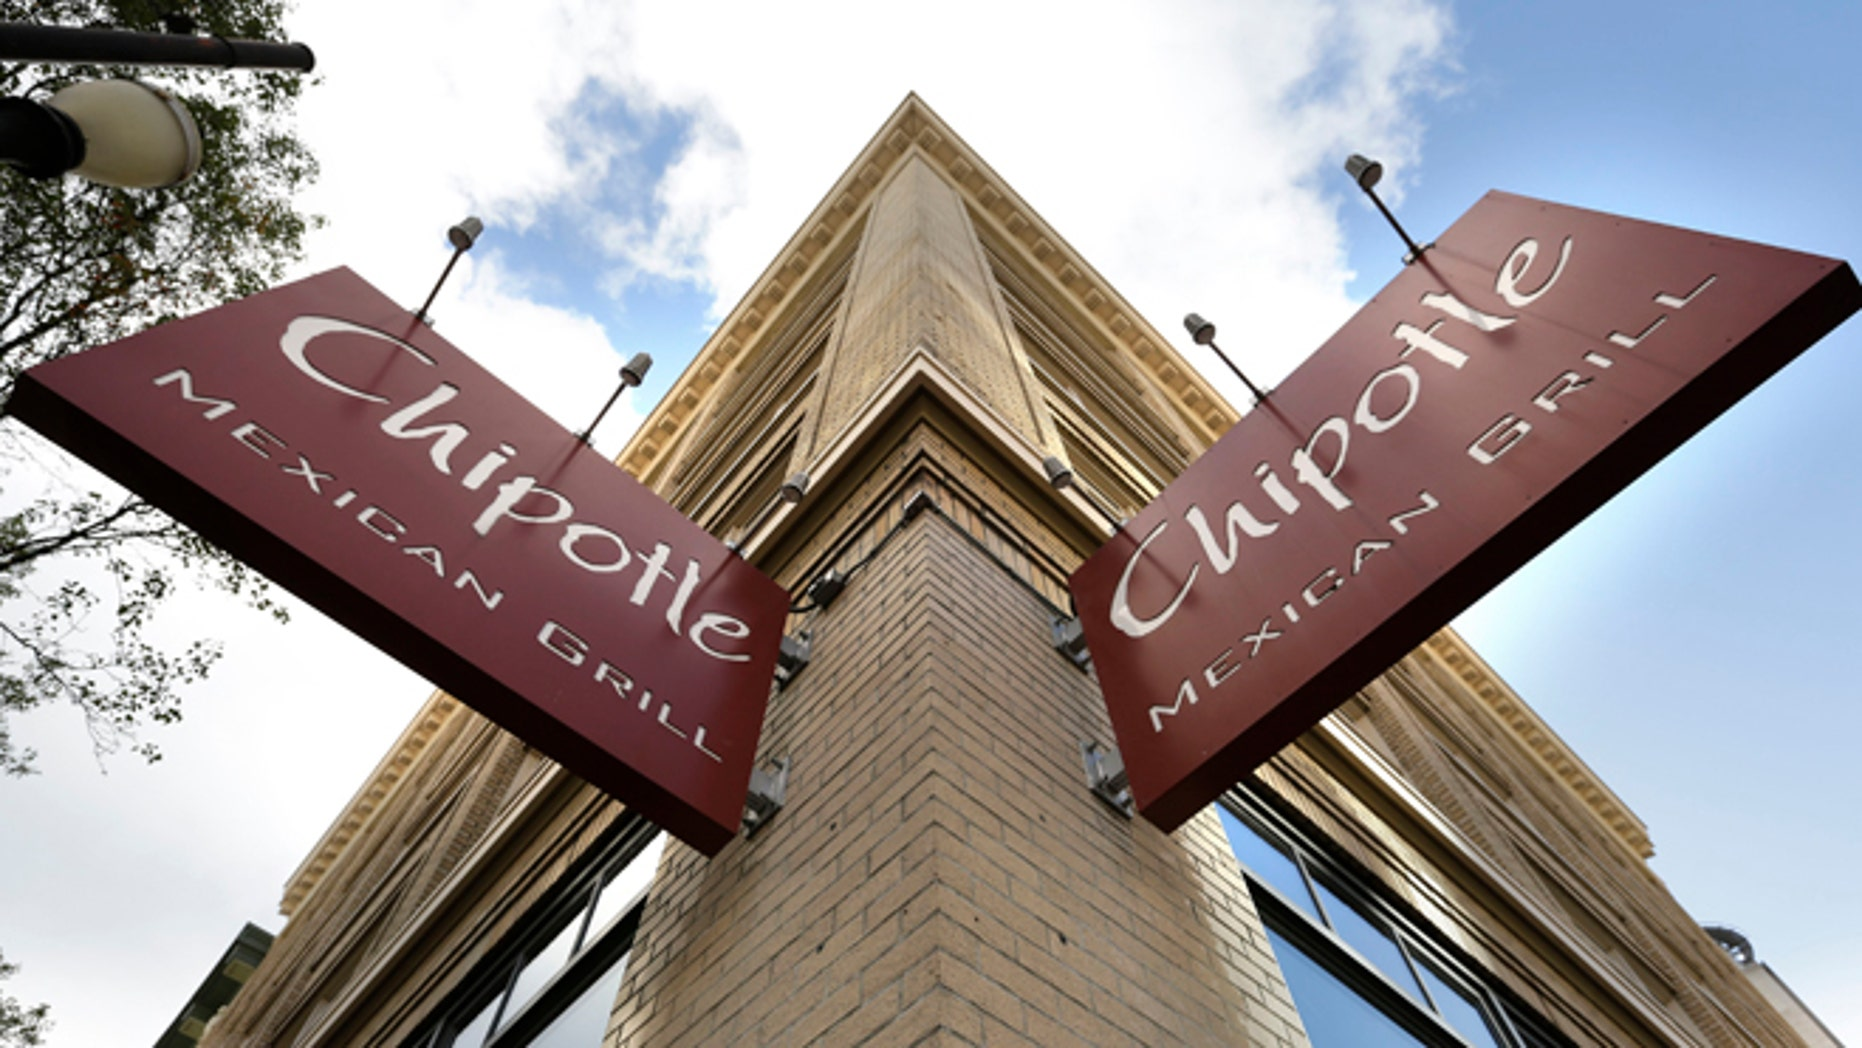 Signage hangs from a closed Chipotle restaurant in Portland, Ore., Monday, Nov. 2, 2015. Chipotle voluntarily closed down 43 of its locations in Washington and the Portland area as a precaution after an E. coli outbreak linked to six of its restaurants in the two states has sickened nearly two dozen people. (AP Photo/Don Ryan)